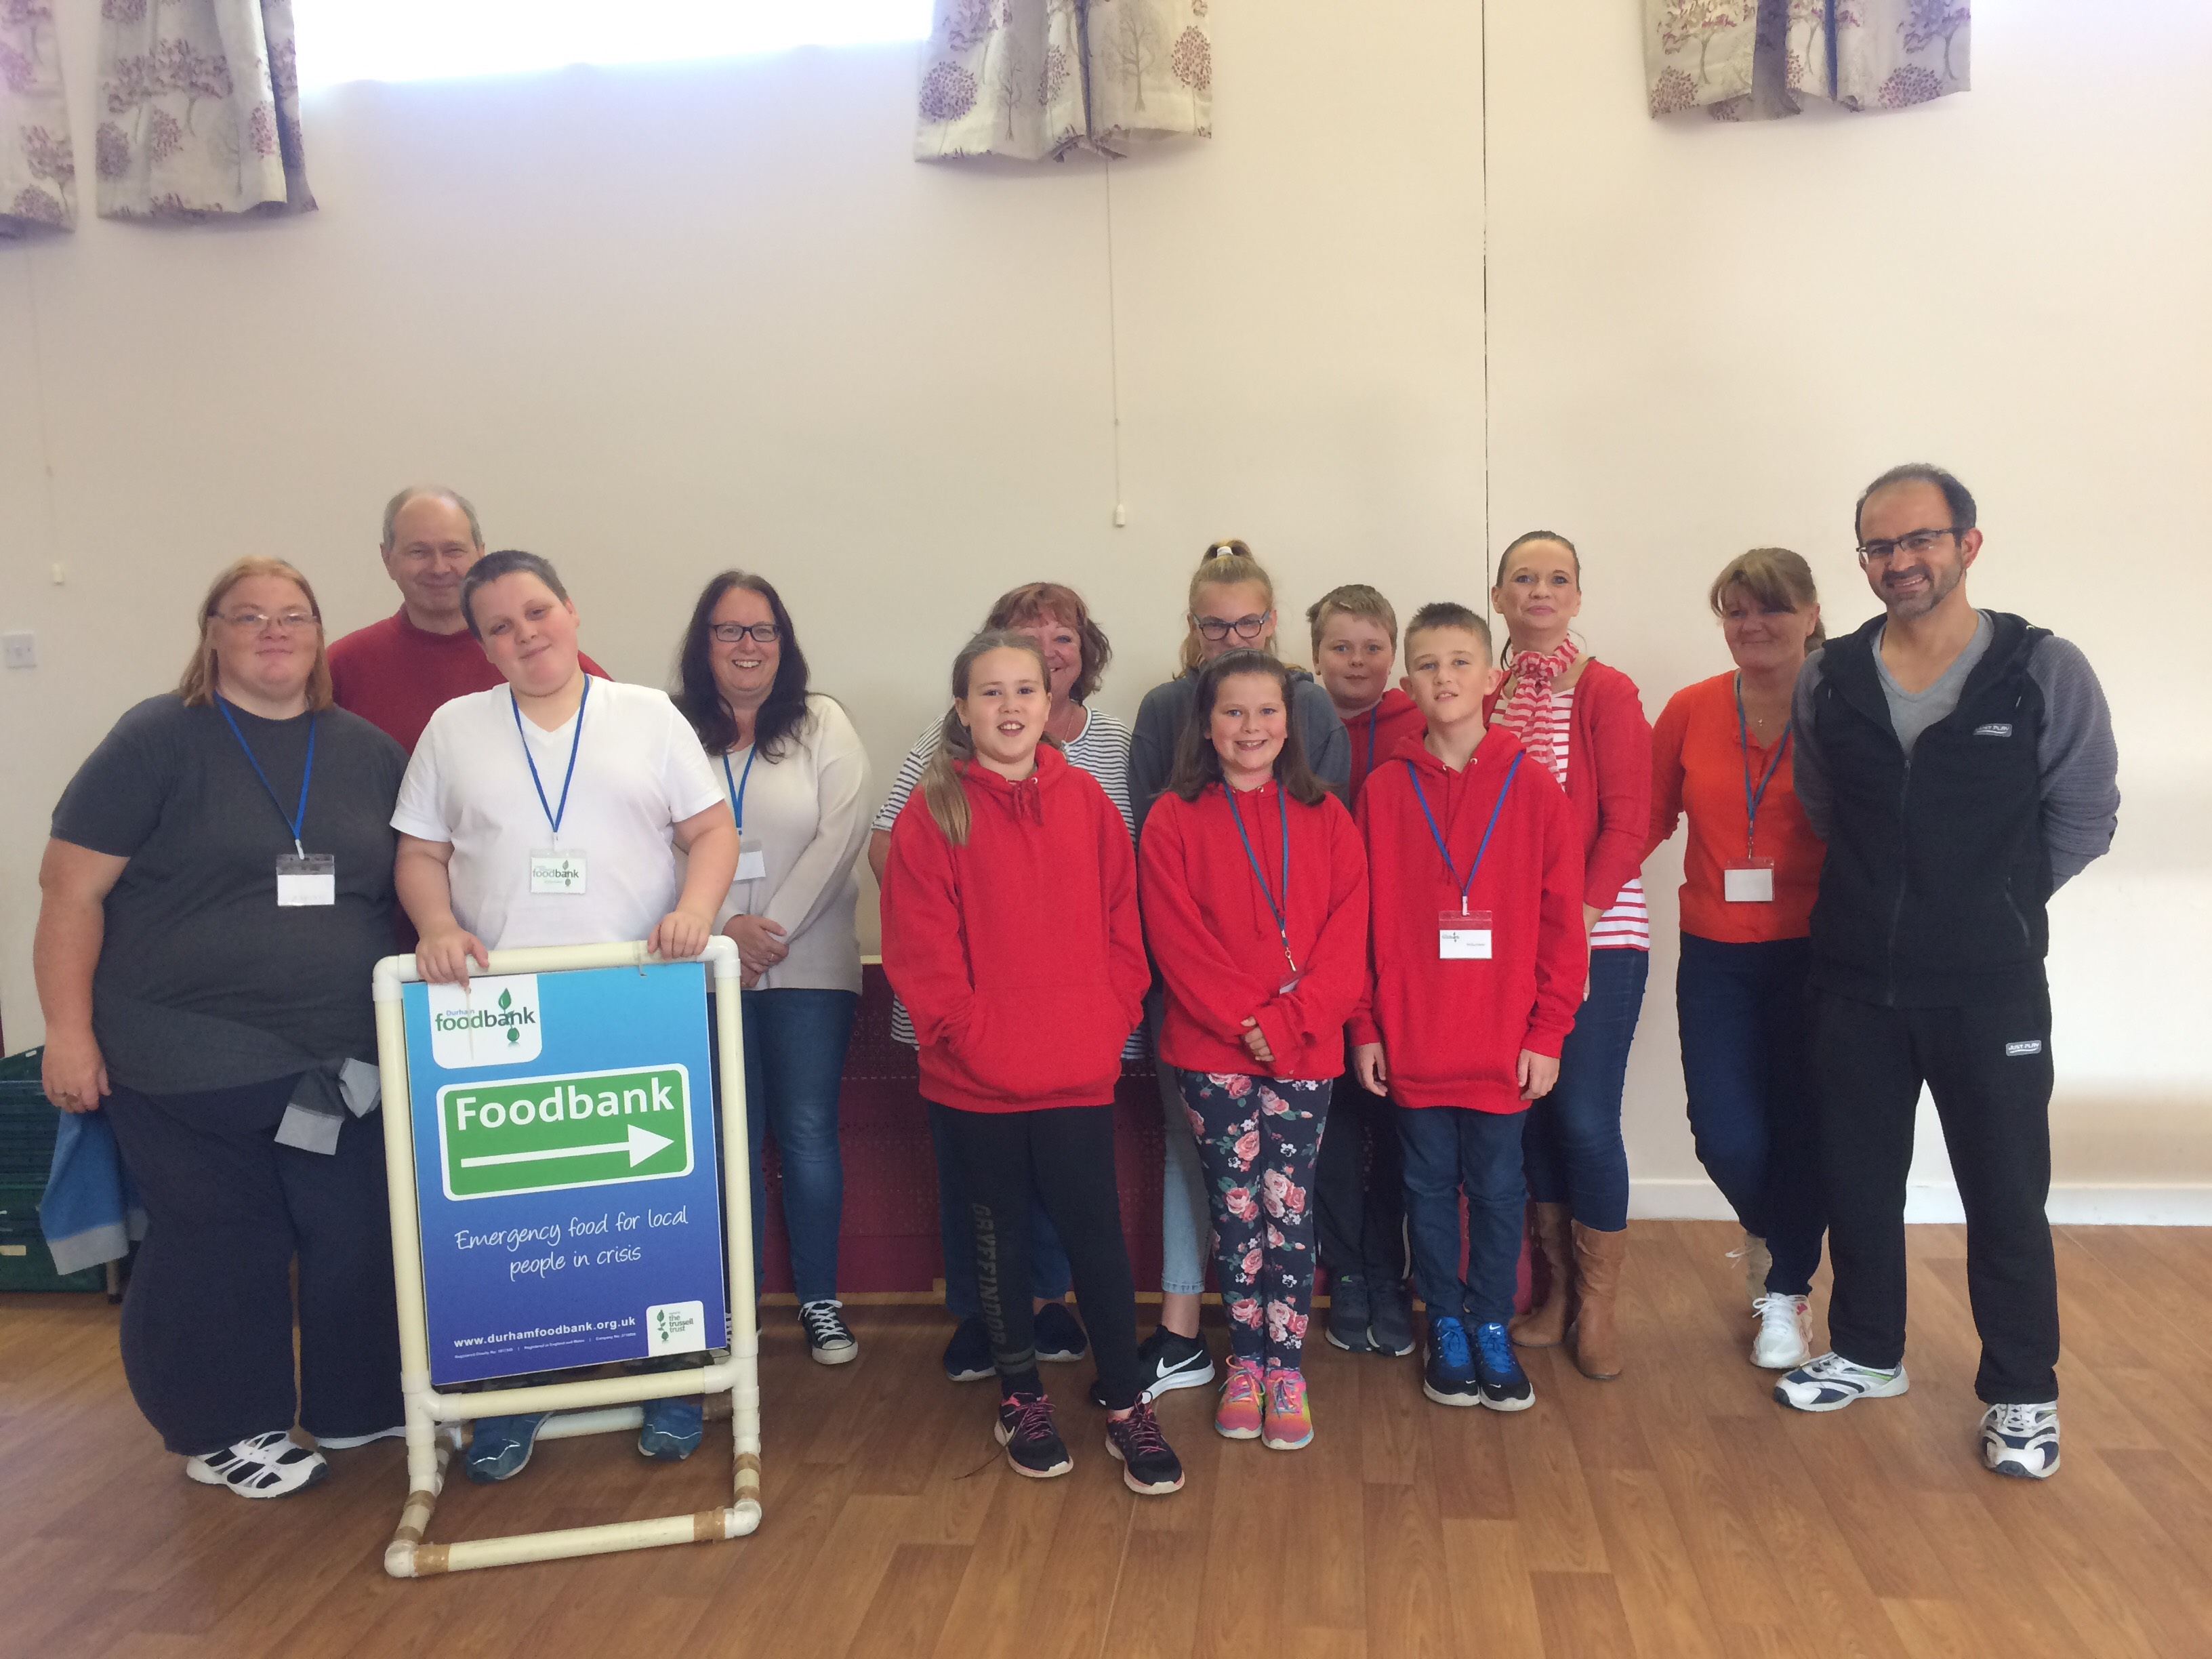 Foodbank Celebrates Sixth Year at St. Clare's